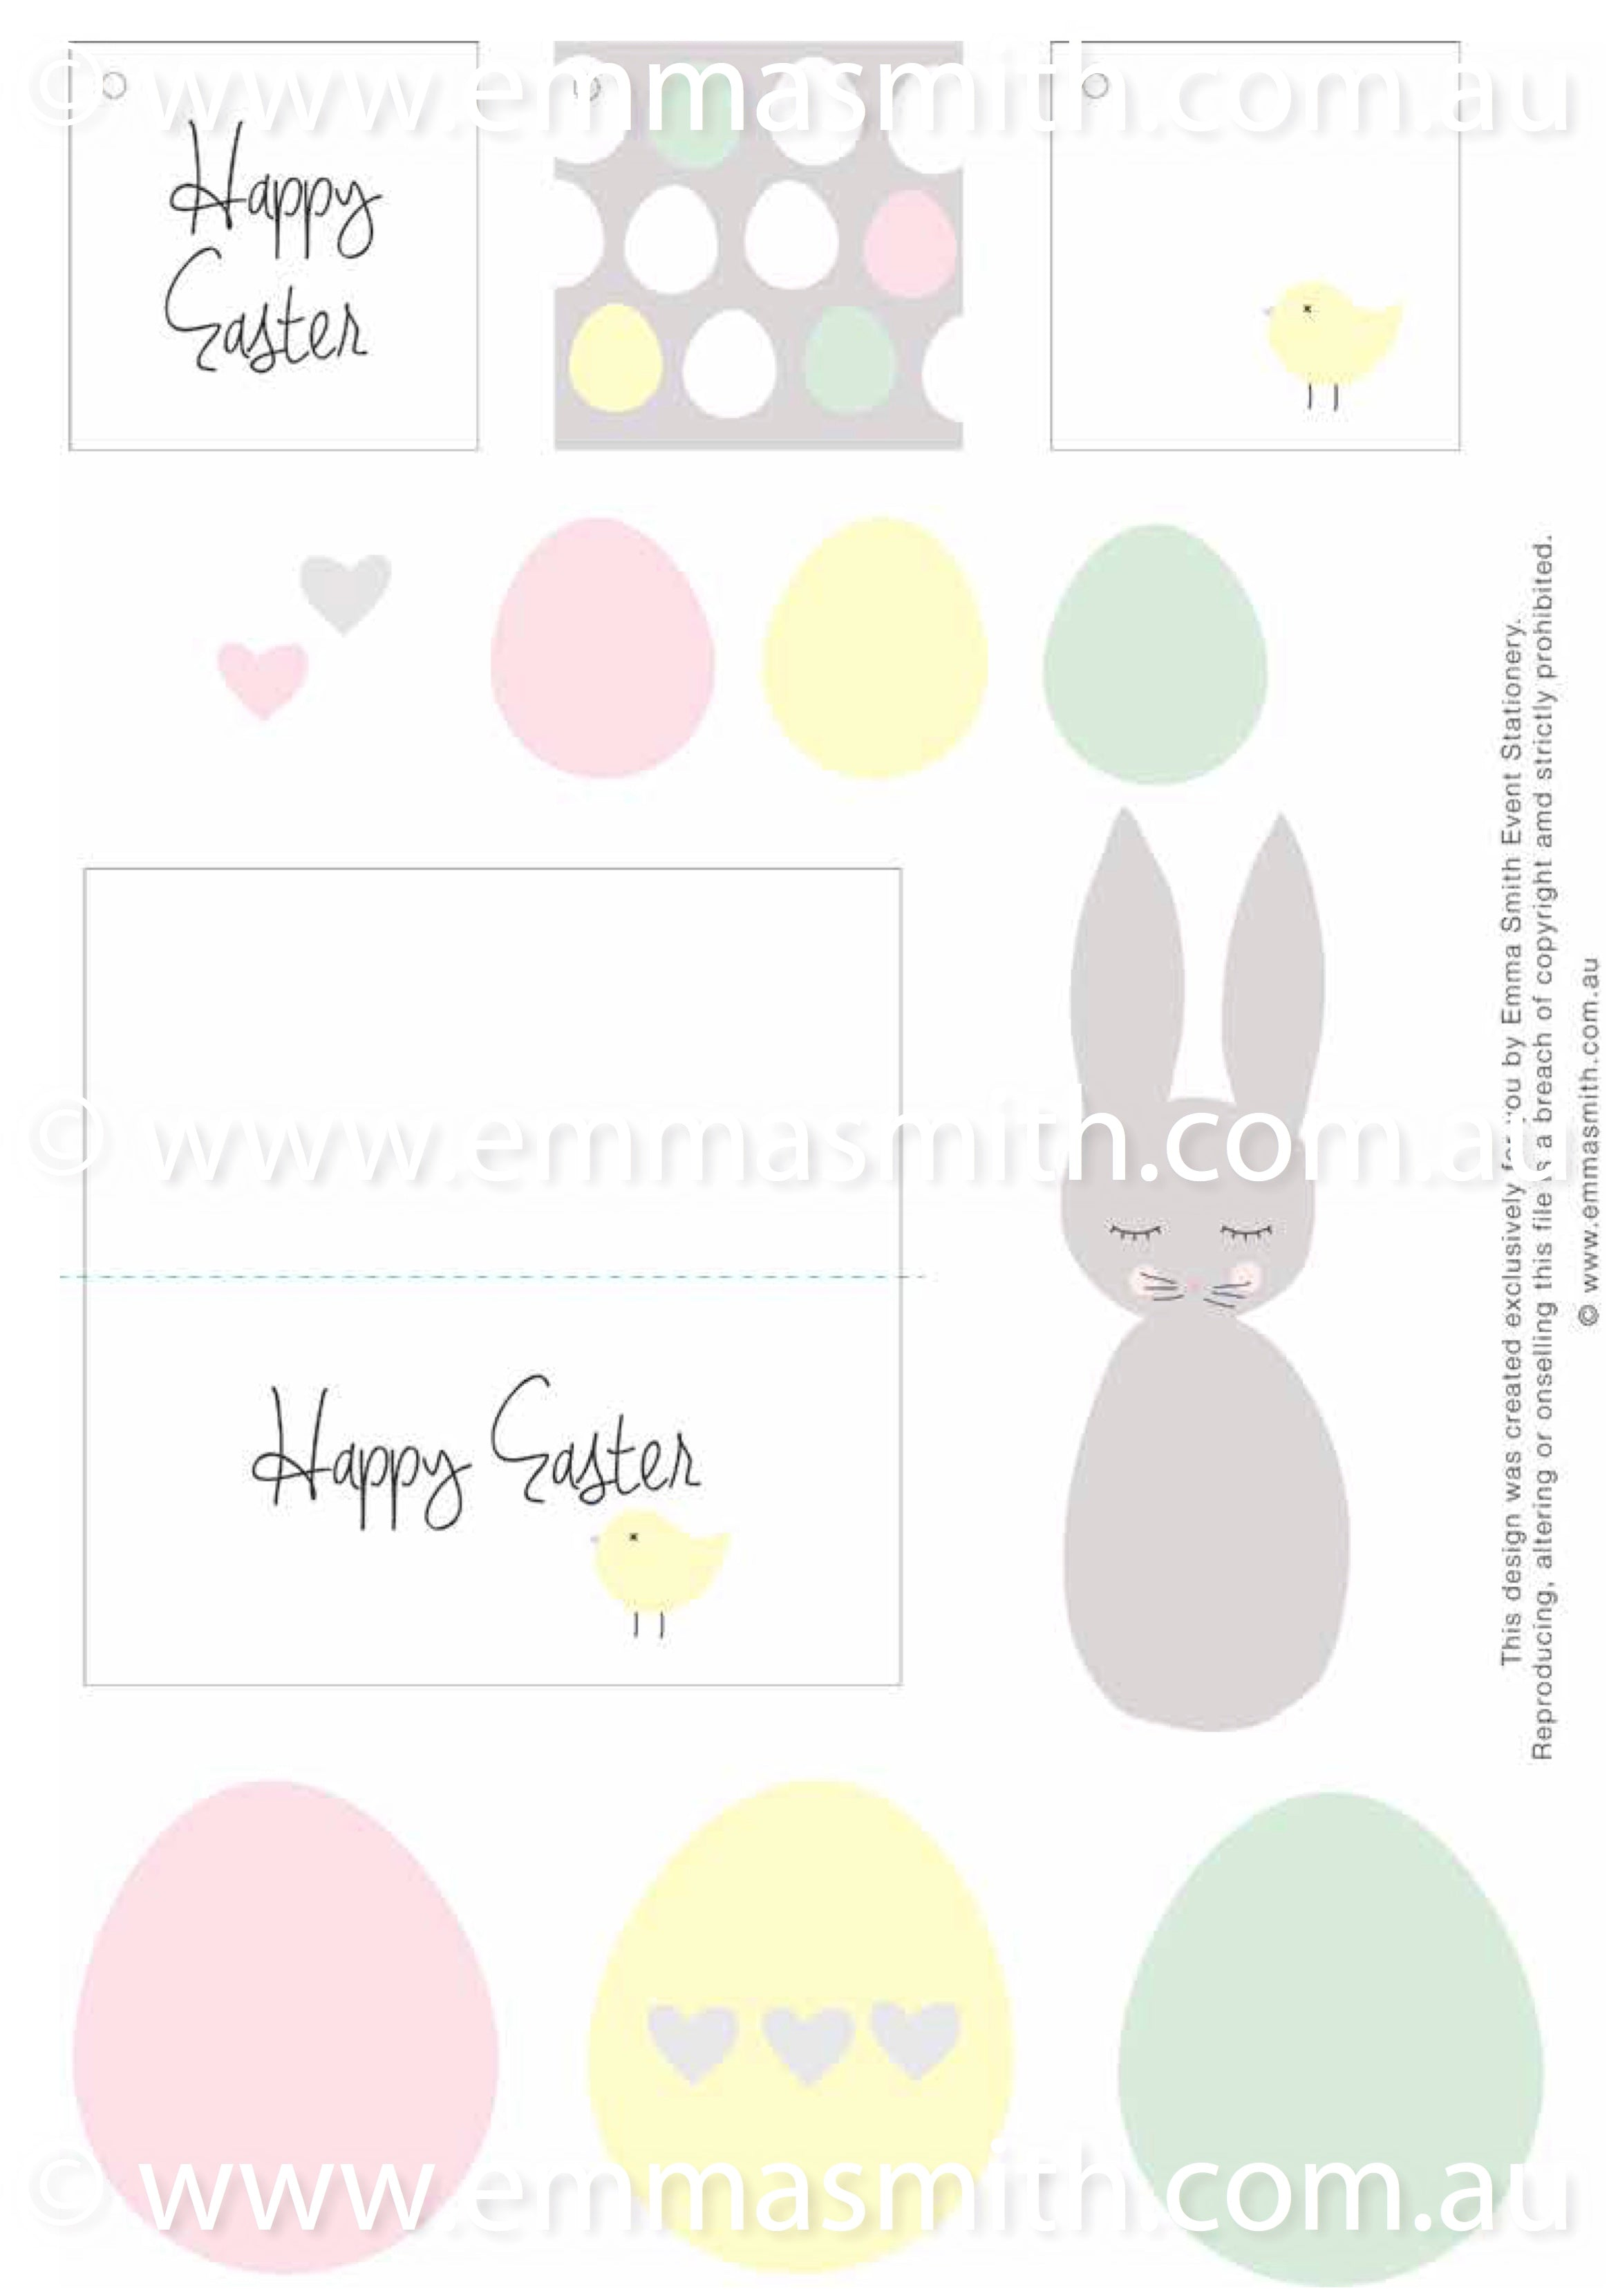 photo relating to Easter Stationery Printable called Easter Electronic Document 2